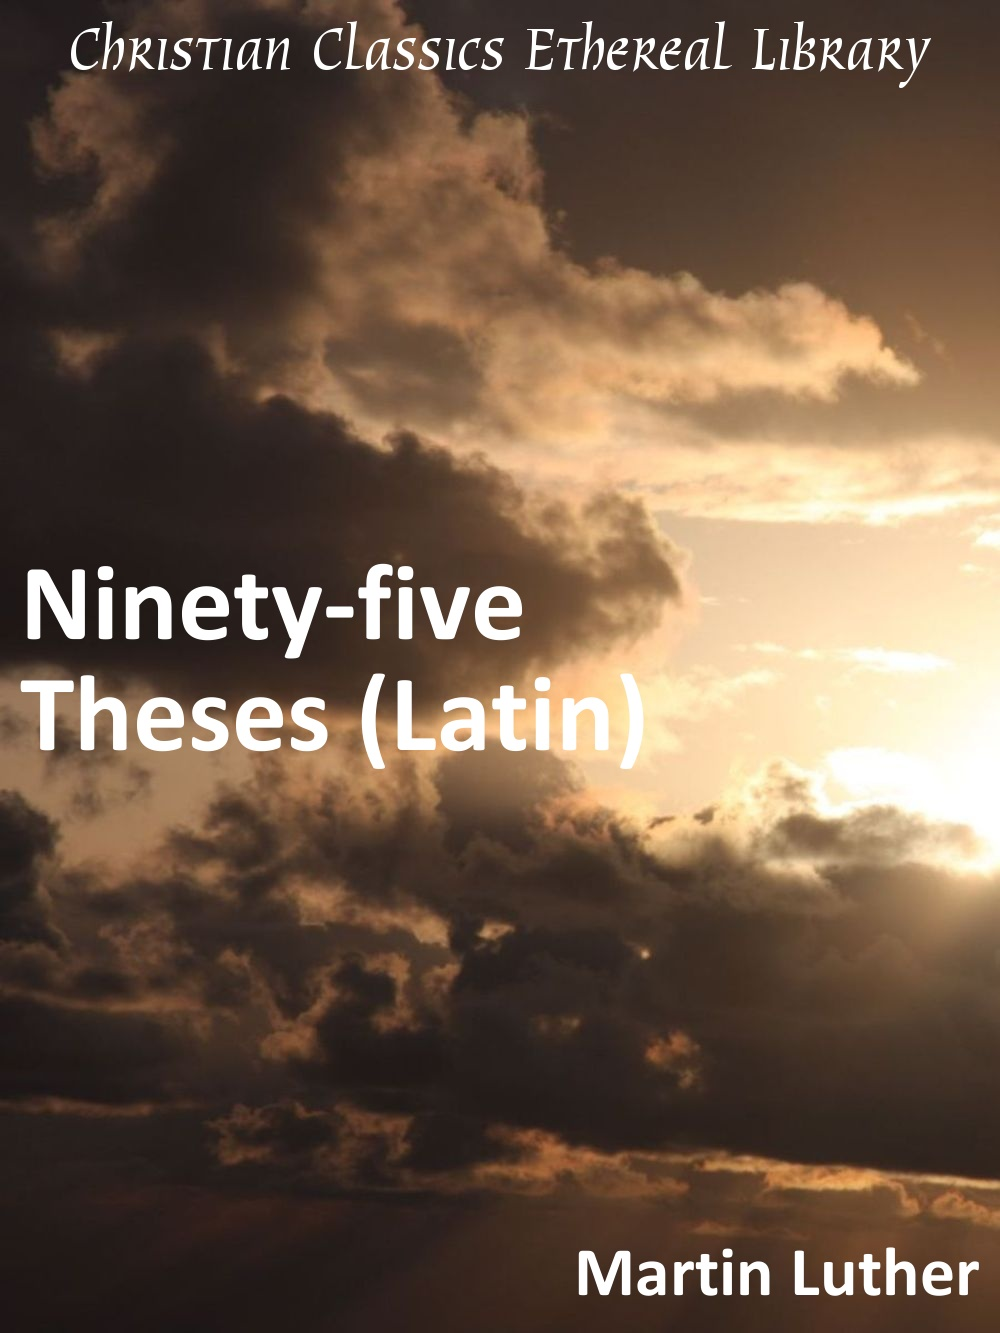 ninety-five theses quizlet